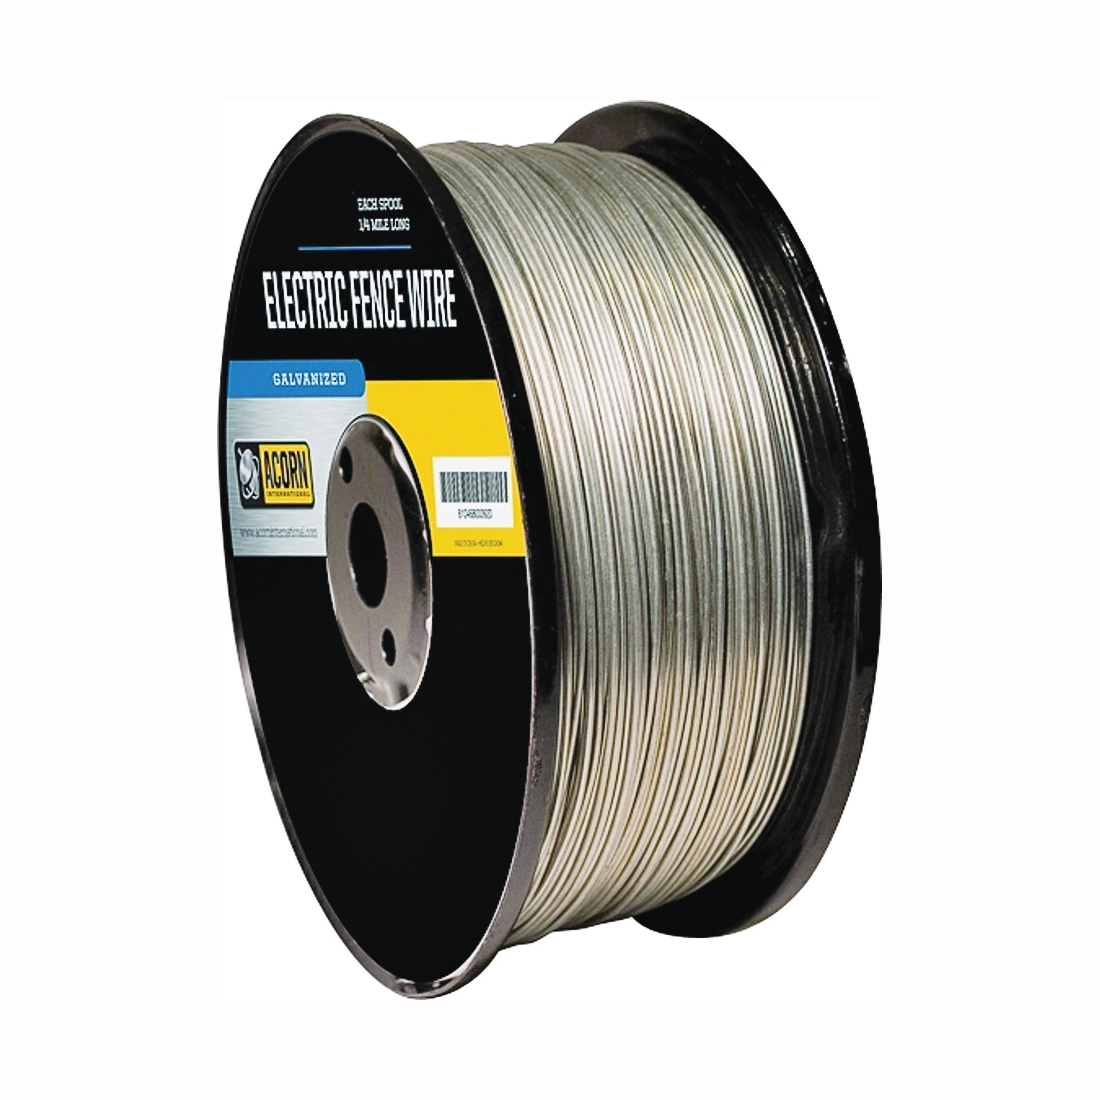 Picture of Acorn International EFW1912 Electric Fence Wire, 19 ga Wire, Metal Conductor, 1/2 mile L